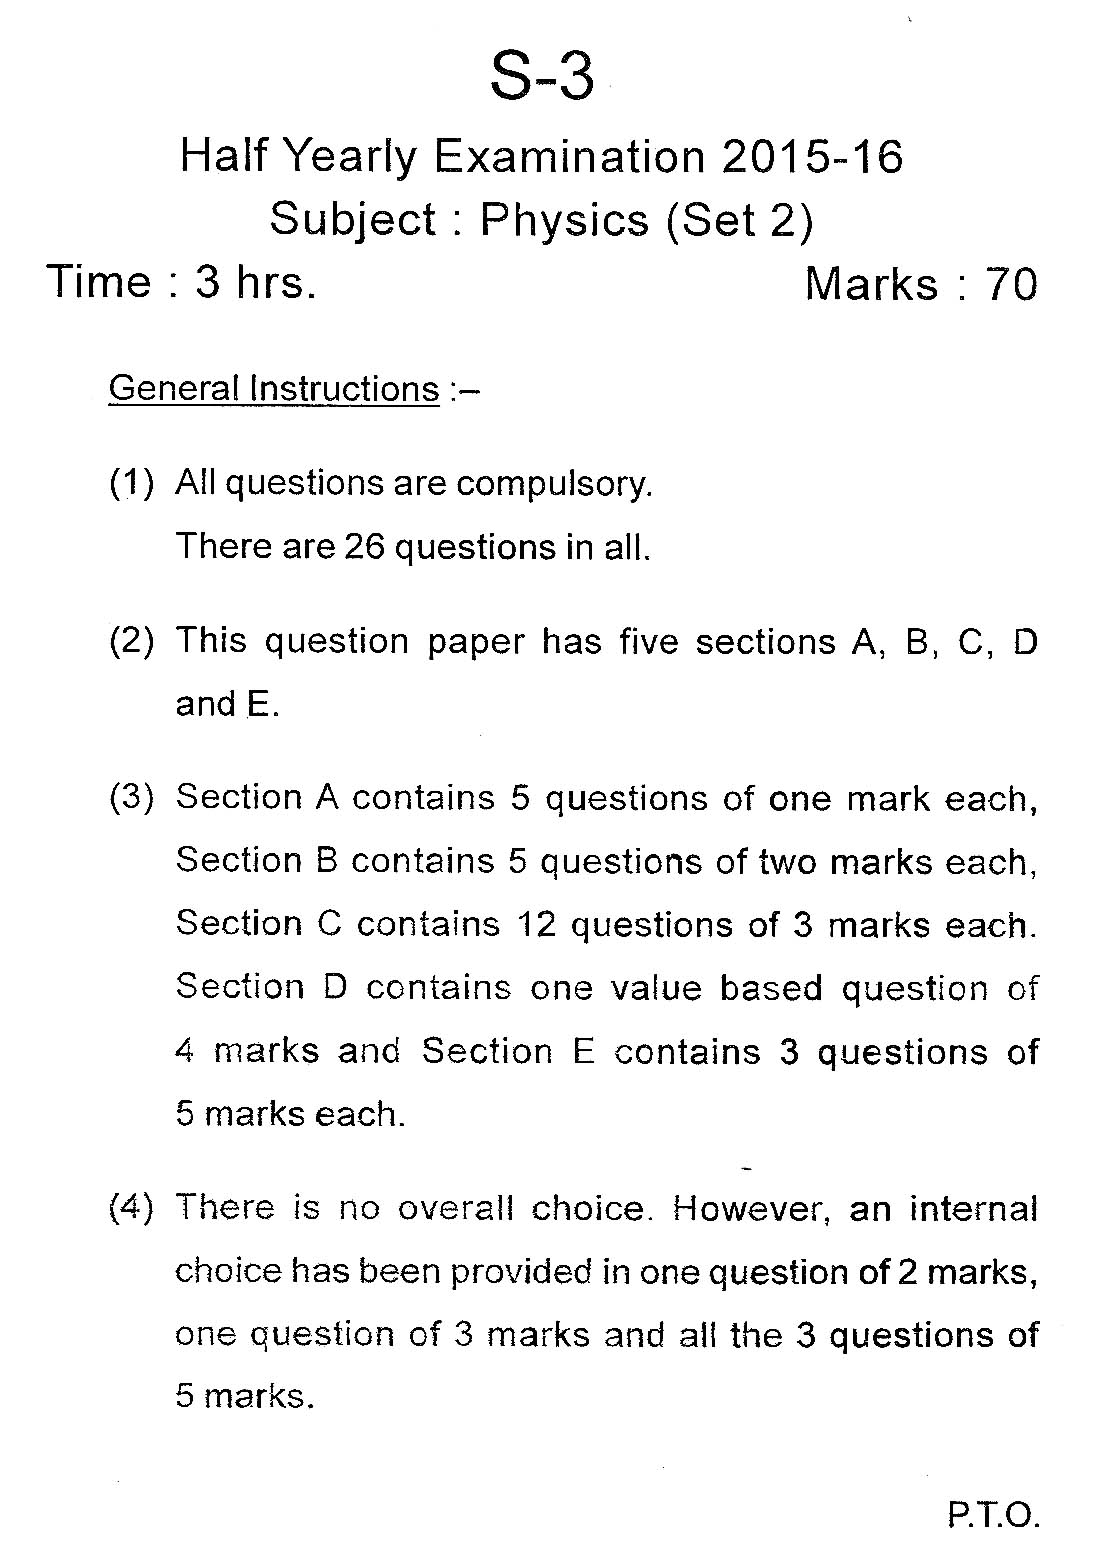 physics first term paper 2 Click here to download sslc physics first term evaluation model question paper 2018 (english medium) more resources from cherupushpa school first term exam 2018 - maths question paper - mal medium first term exam 2018 - maths question paper - eng medium  posted by raveendranatha nayak sheni at 07:43.